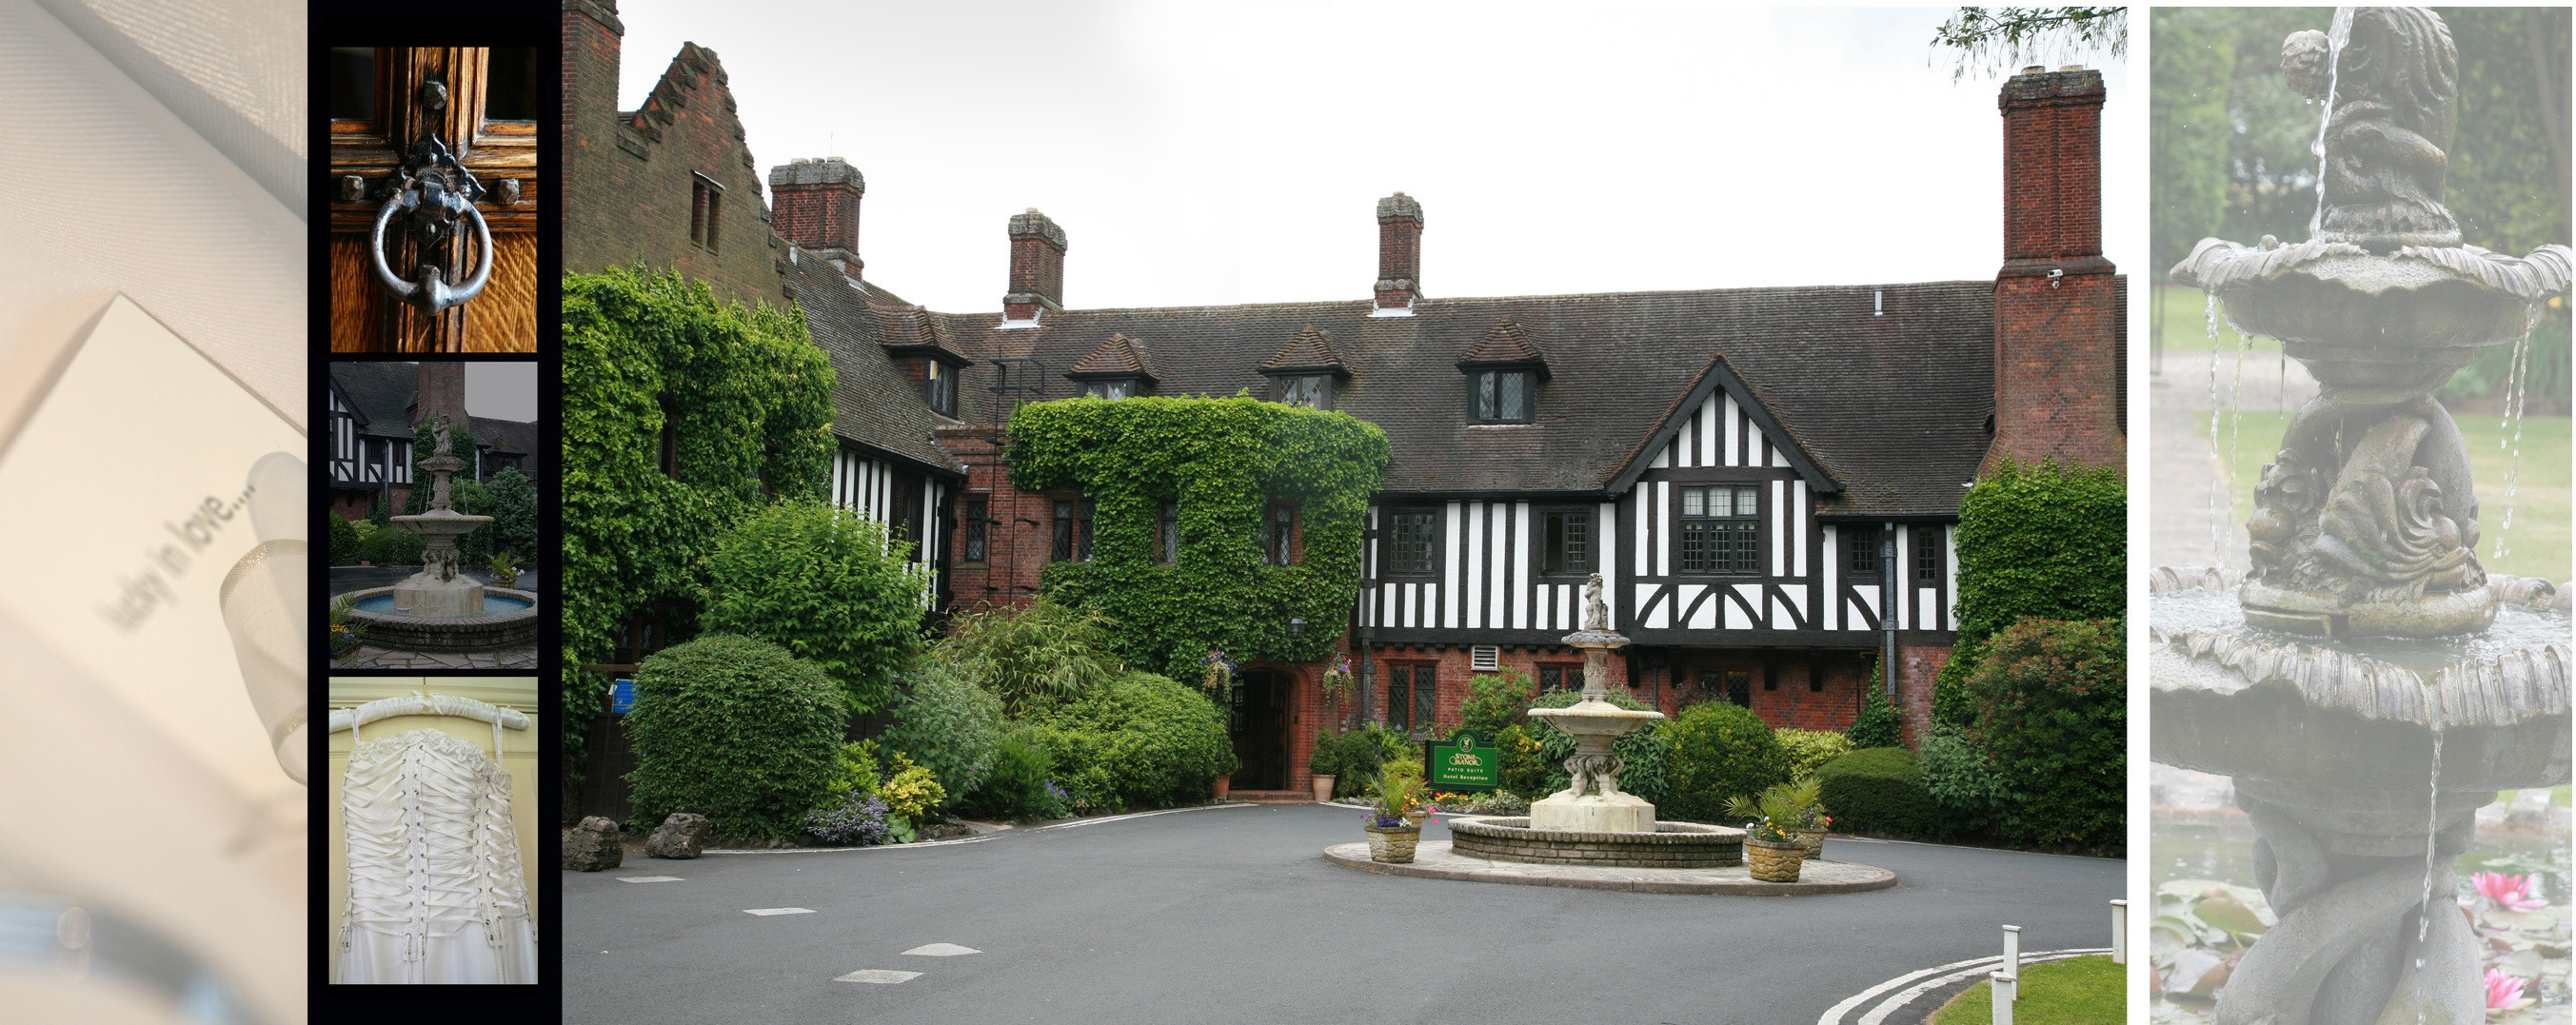 Picture of Hogarths Stone Manor Hotel